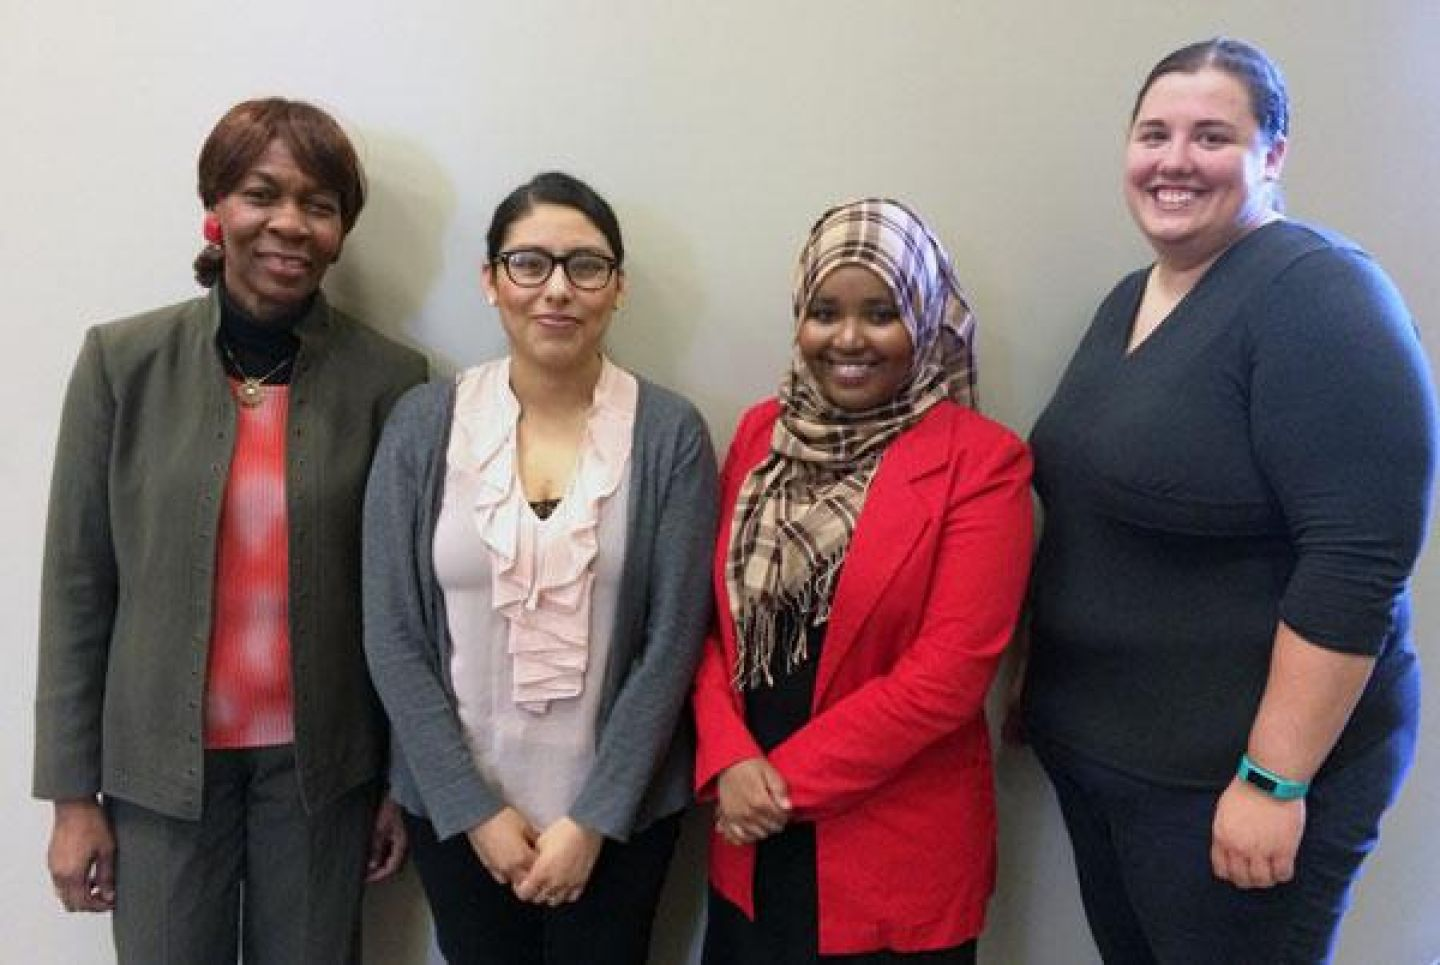 Thelma Obah, Laura Mena '16, Ikram Koliso '17 and Elizabeth Steffen collaborated on the Emerging Scholars Study Advocates program. Photo by Sharon Rolenc.